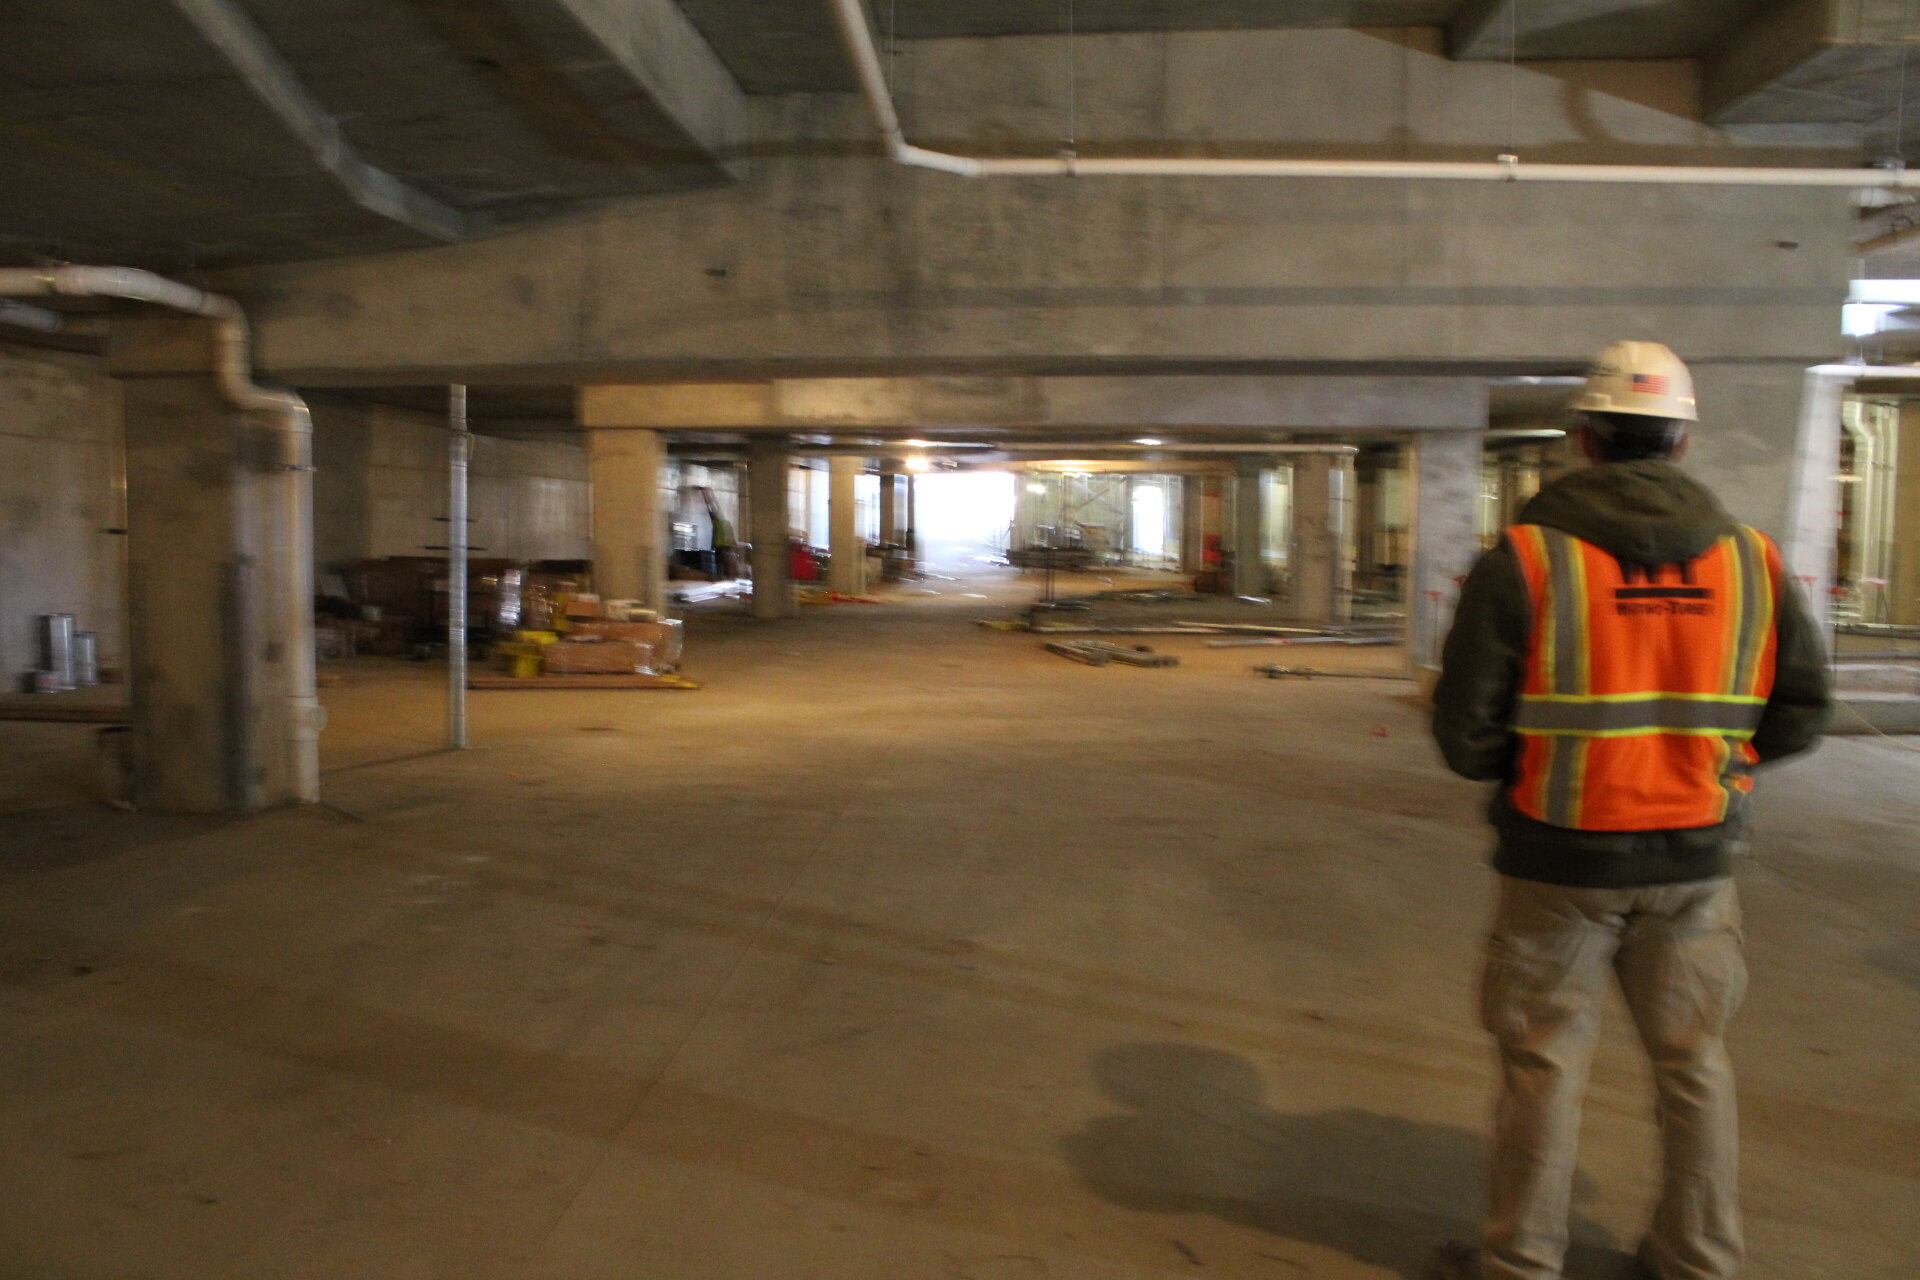 The underground parking garage will have spaces for both Carpenter's Shelter and AHDC to share, with separated elevator entrances into each half of the building.